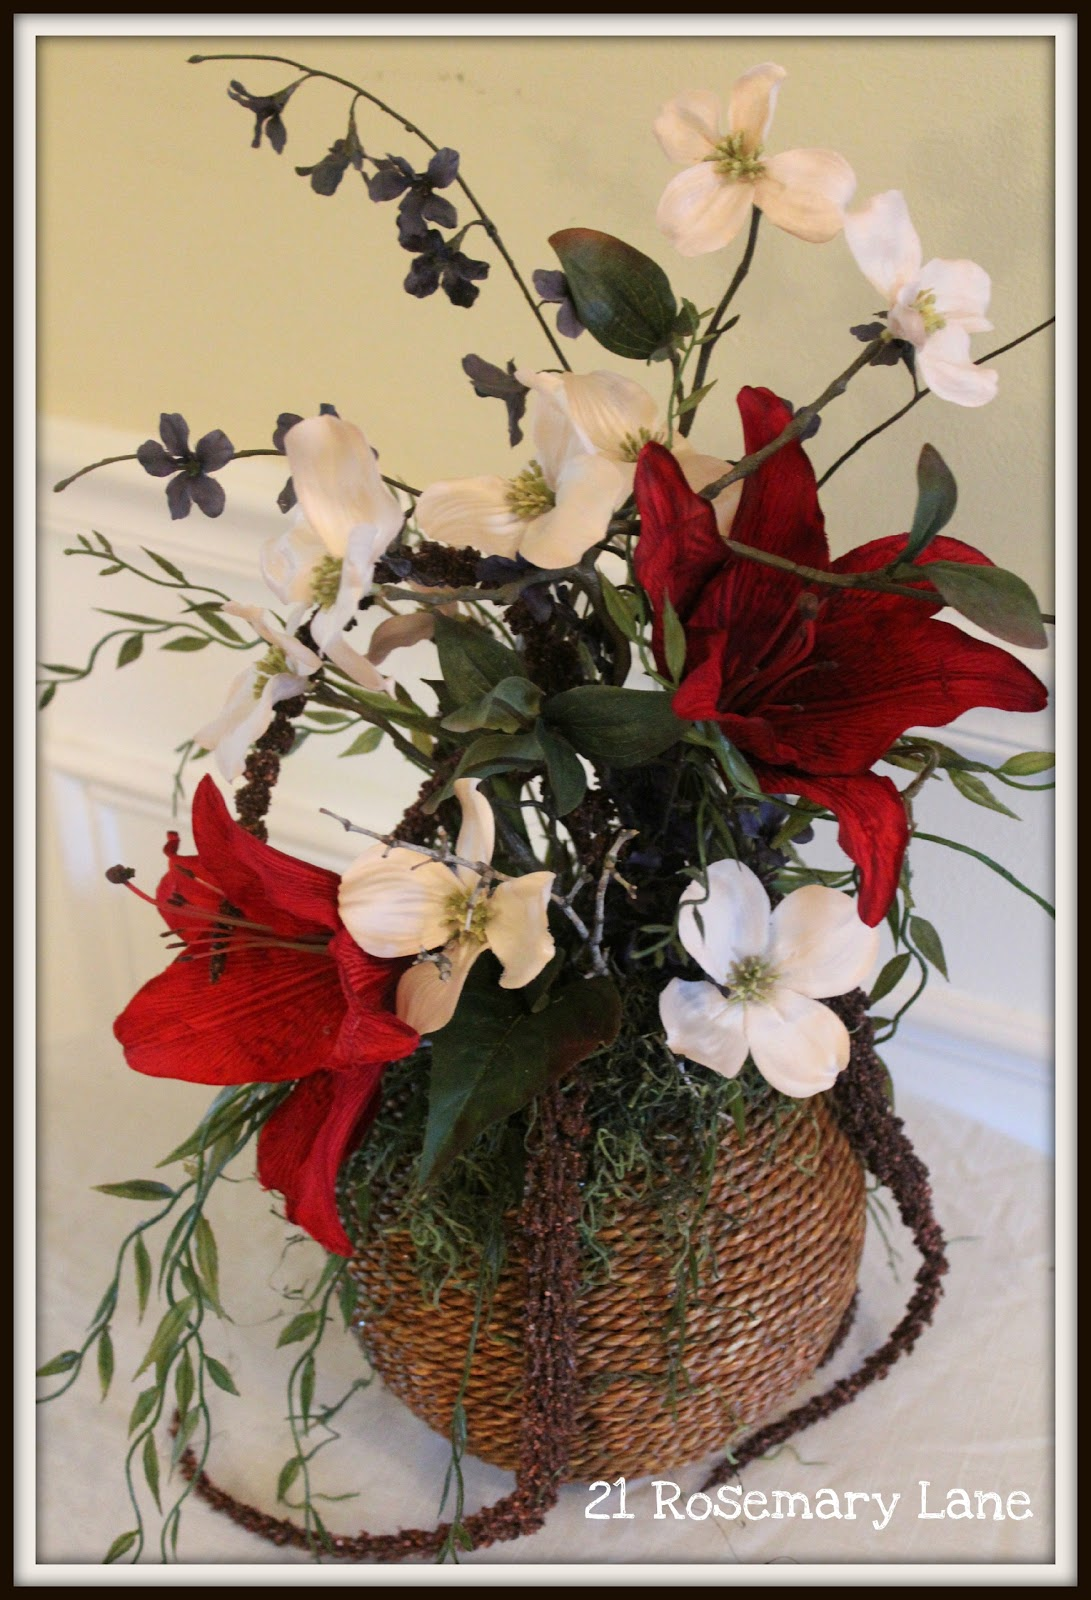 21 Rosemary Lane Birthday Gift Silk Floral Arrangement Plus